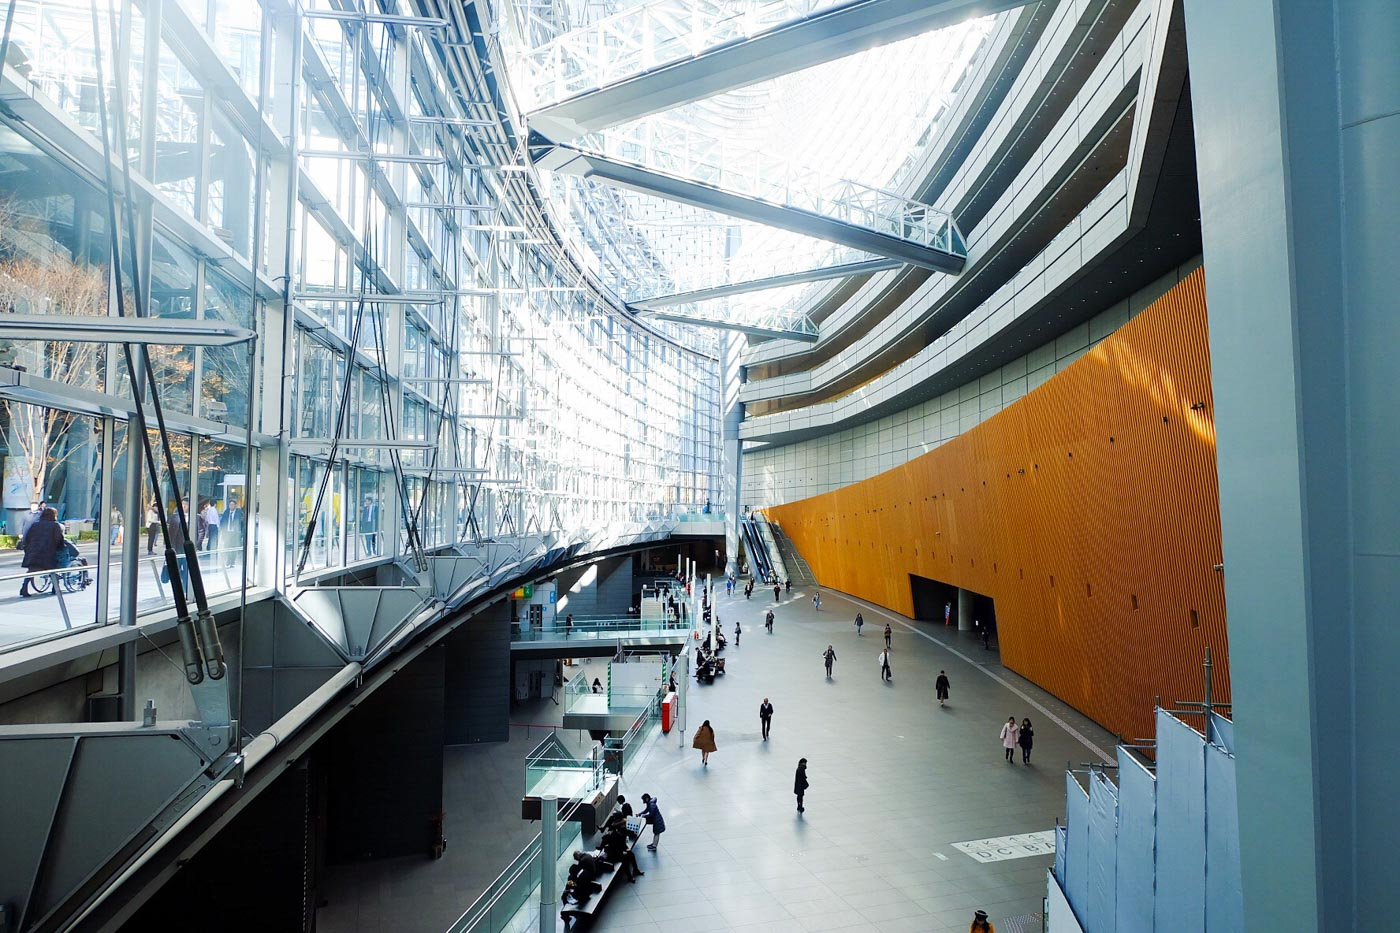 MODERN LOOK. The Tokyo International Forum maintains its modern interiors since it was opened in 1997. Photo by Beatrice Go/Rappler